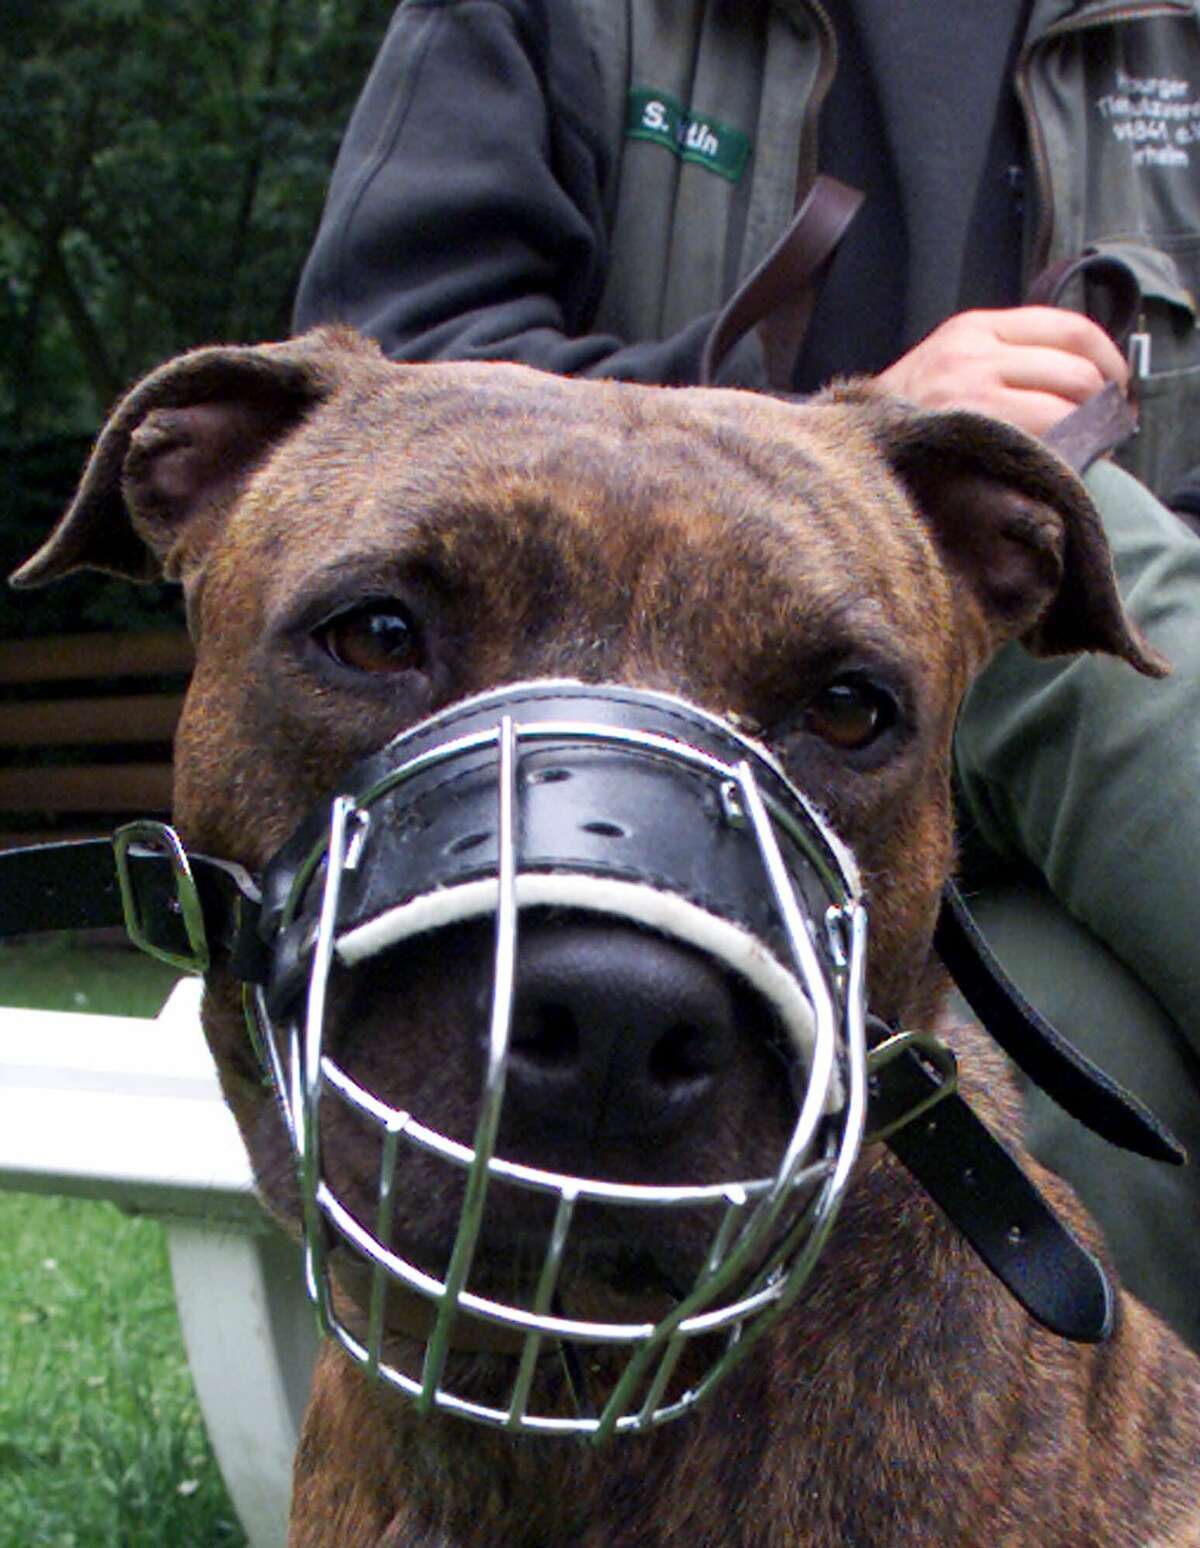 A Pit Bull with muzzle on leash looks at the camera in an animal shelter.